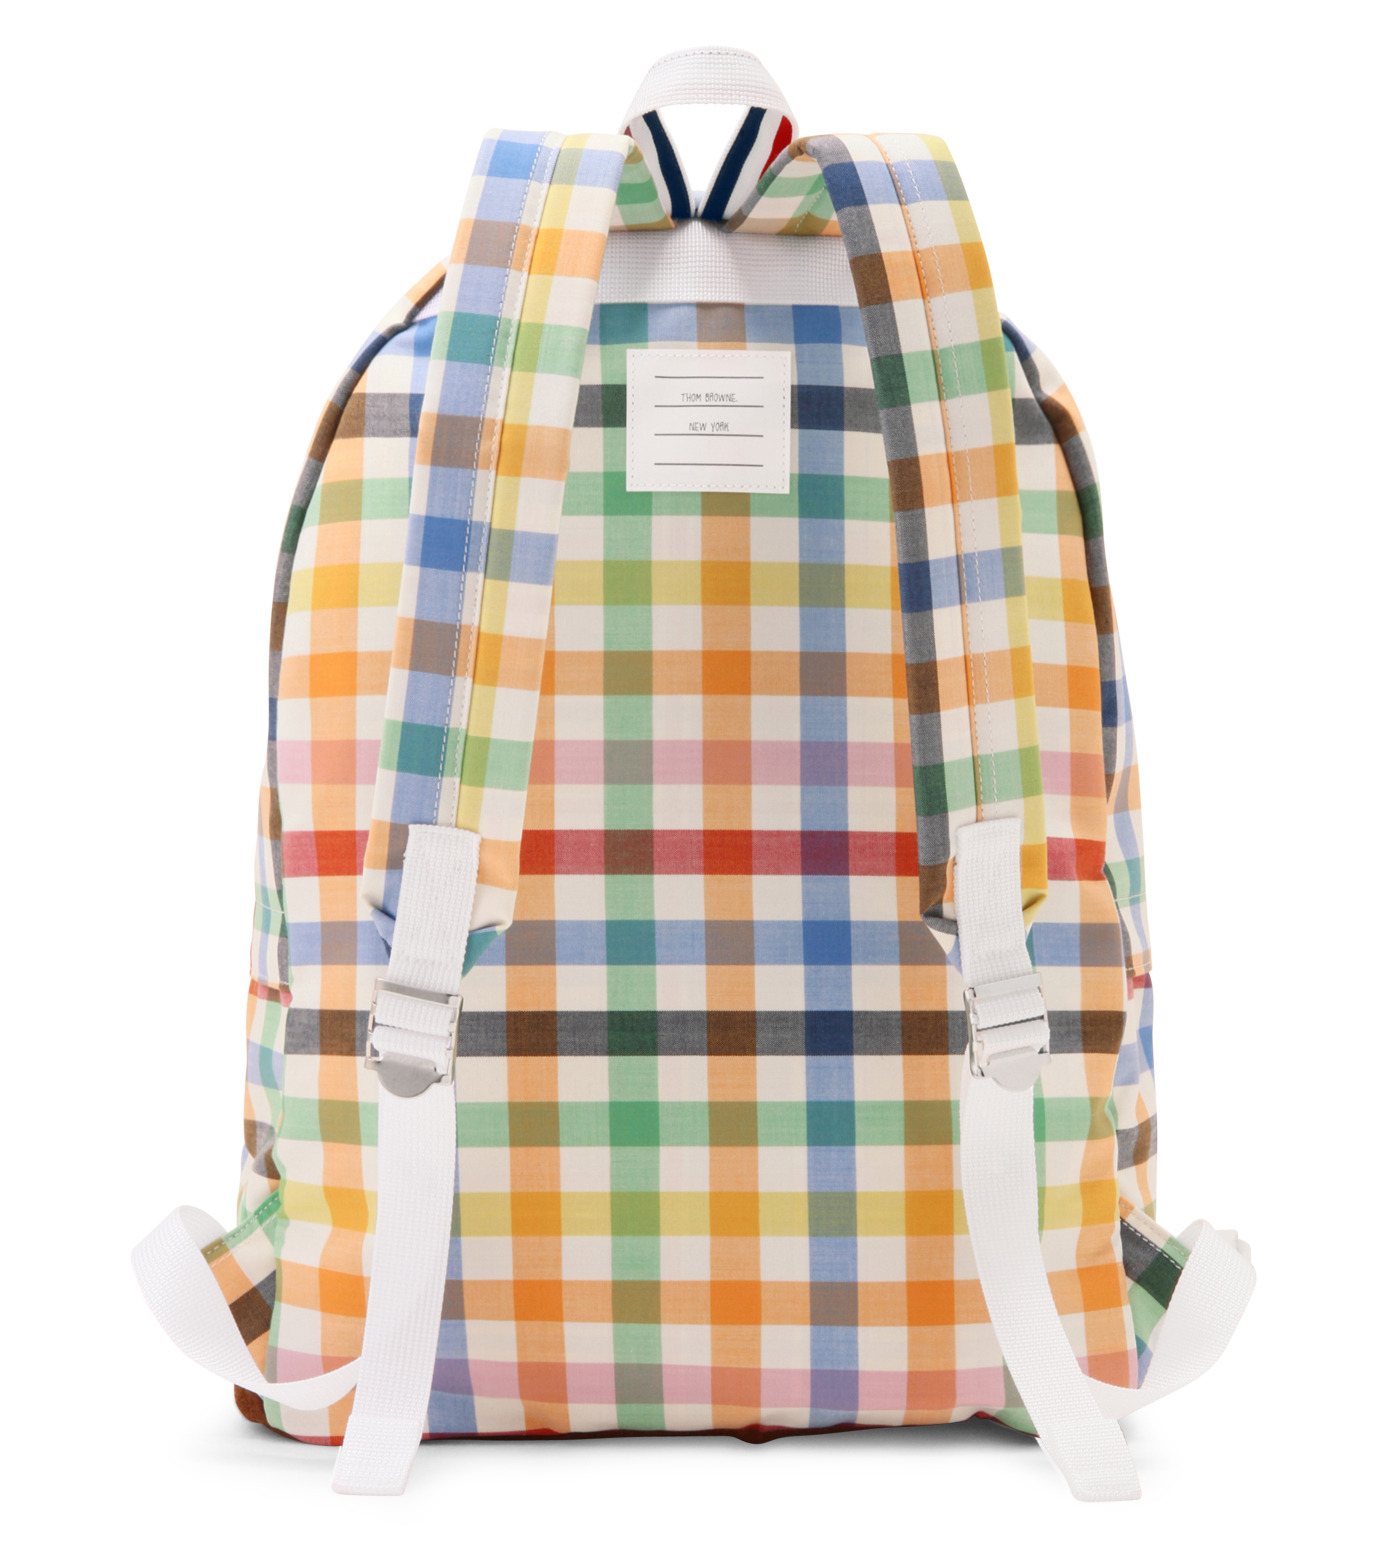 Thom Browne(トムブラウン)のBackpack-YELLOW-MAG005BW6948-32 拡大詳細画像3